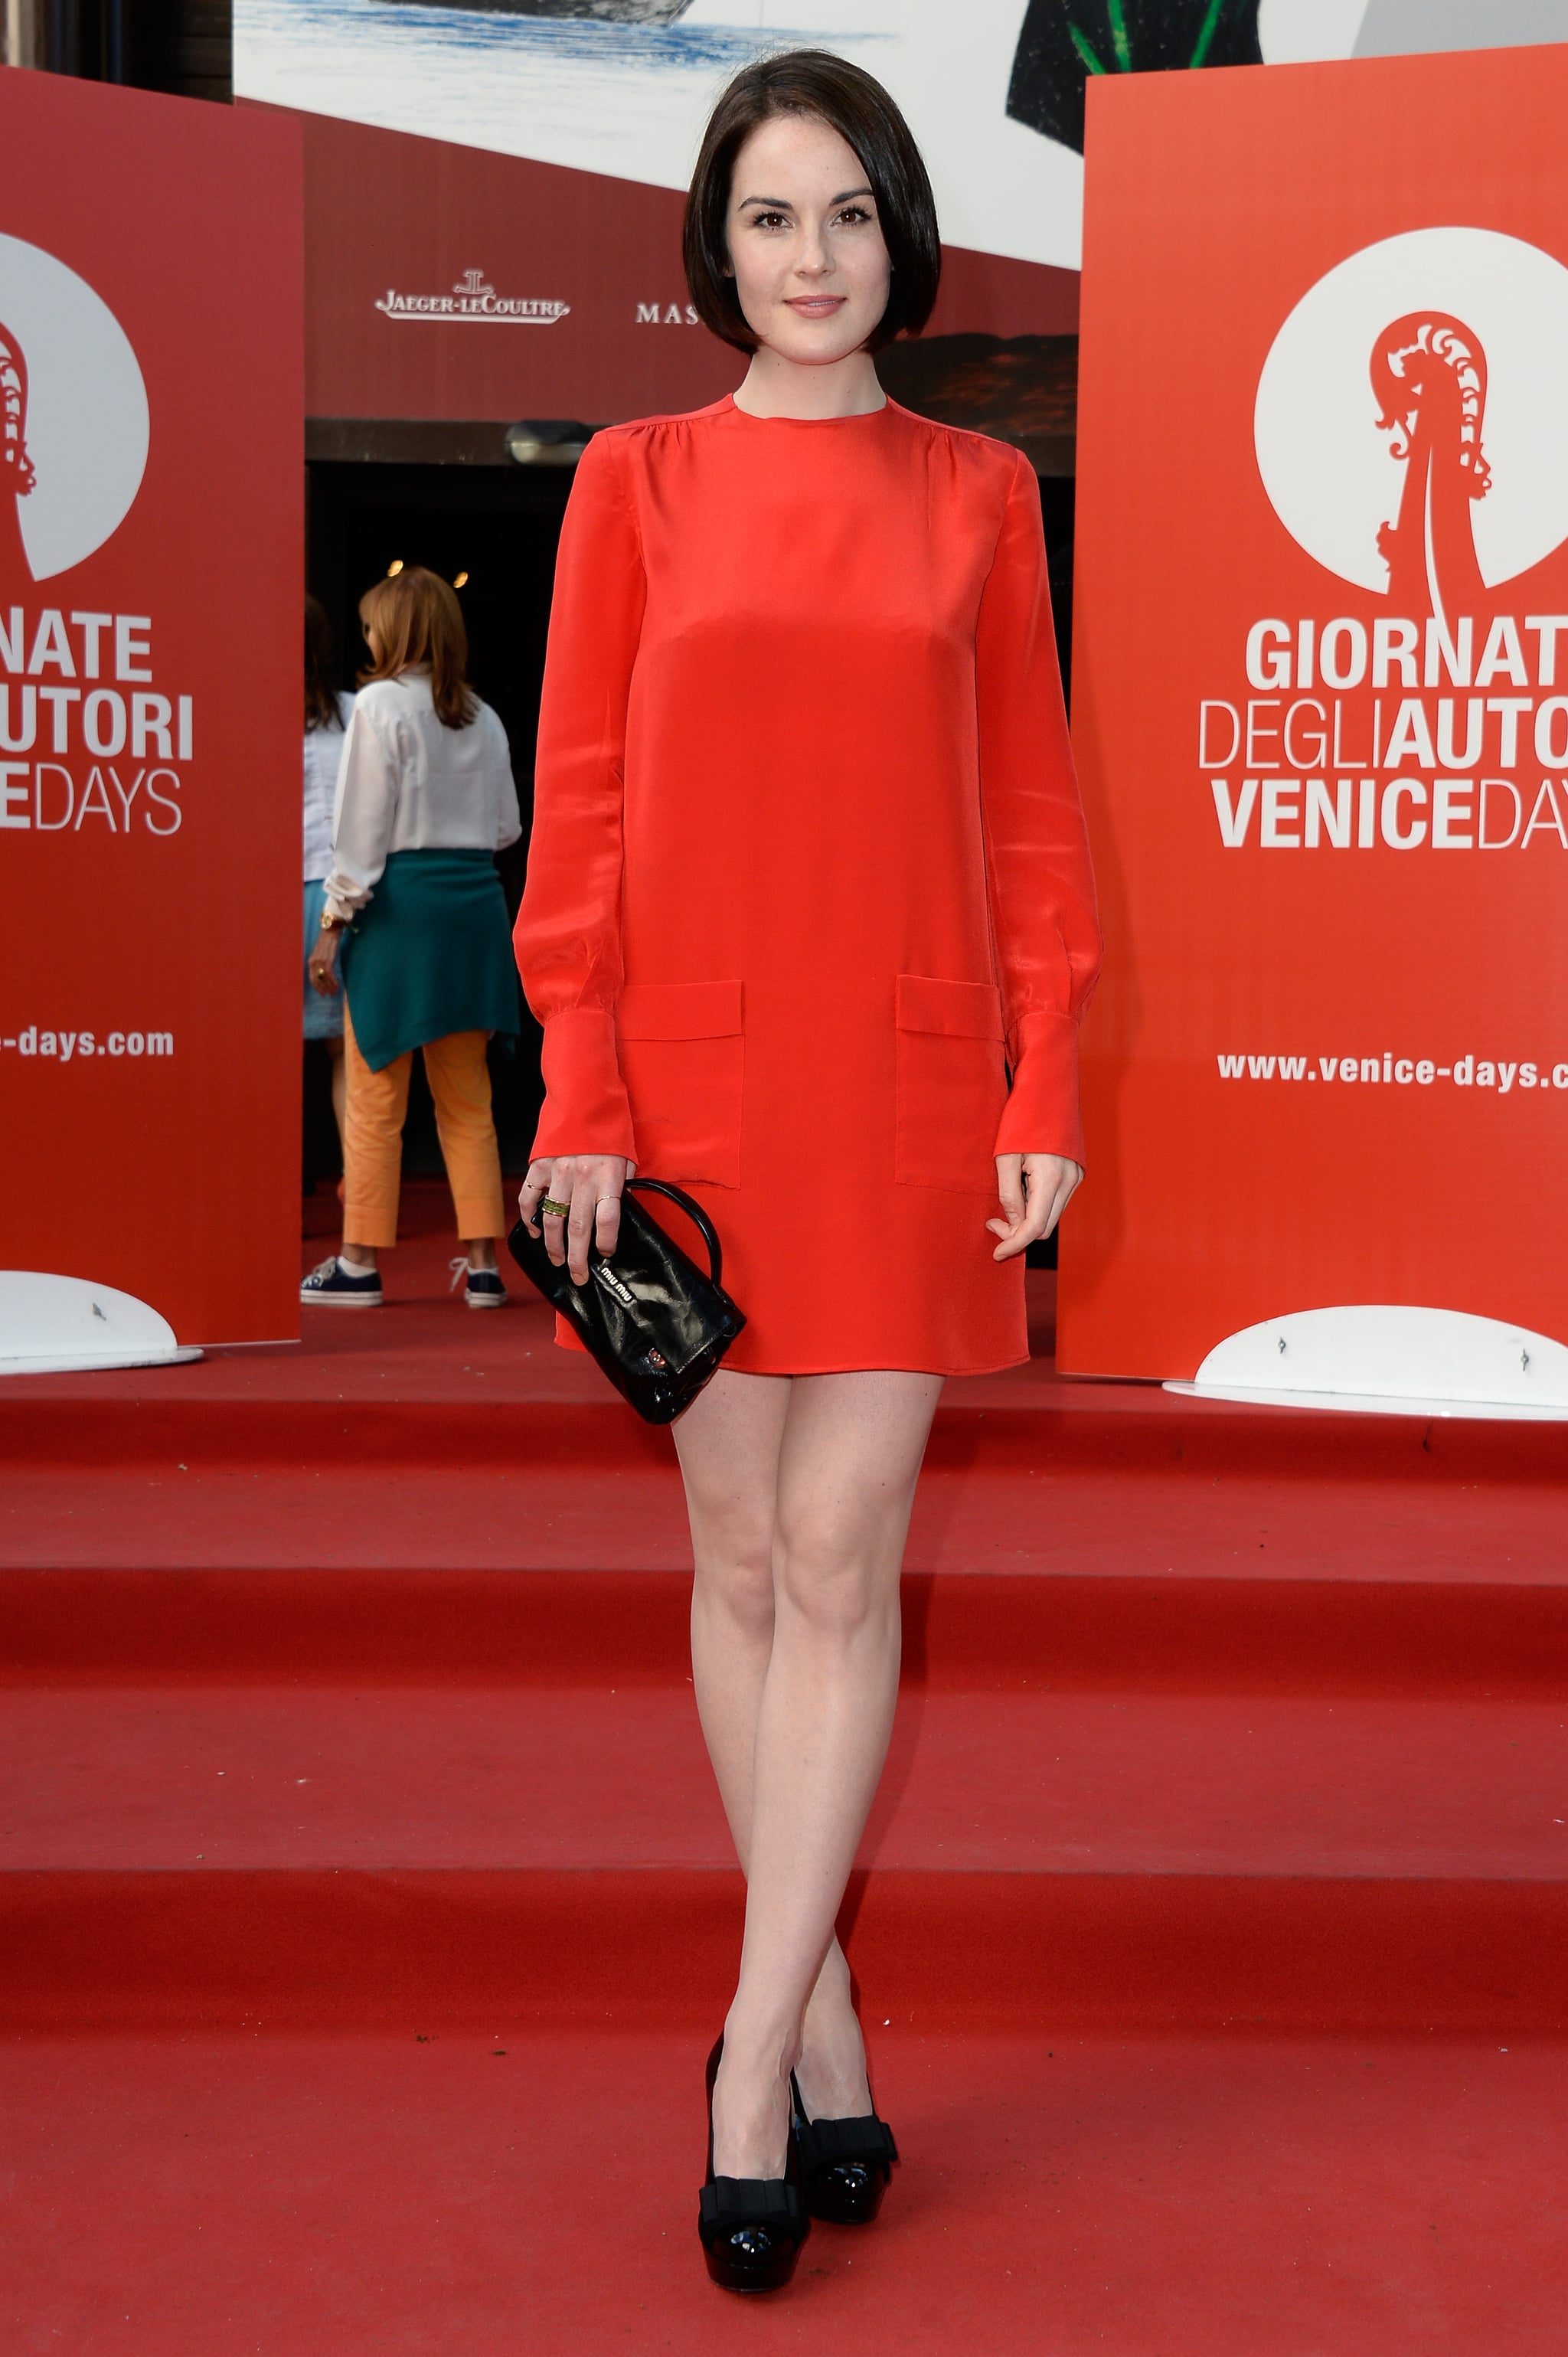 Michelle Dockery attended the Miu Miu Women's Tales premiere during the Venice Film Festival.